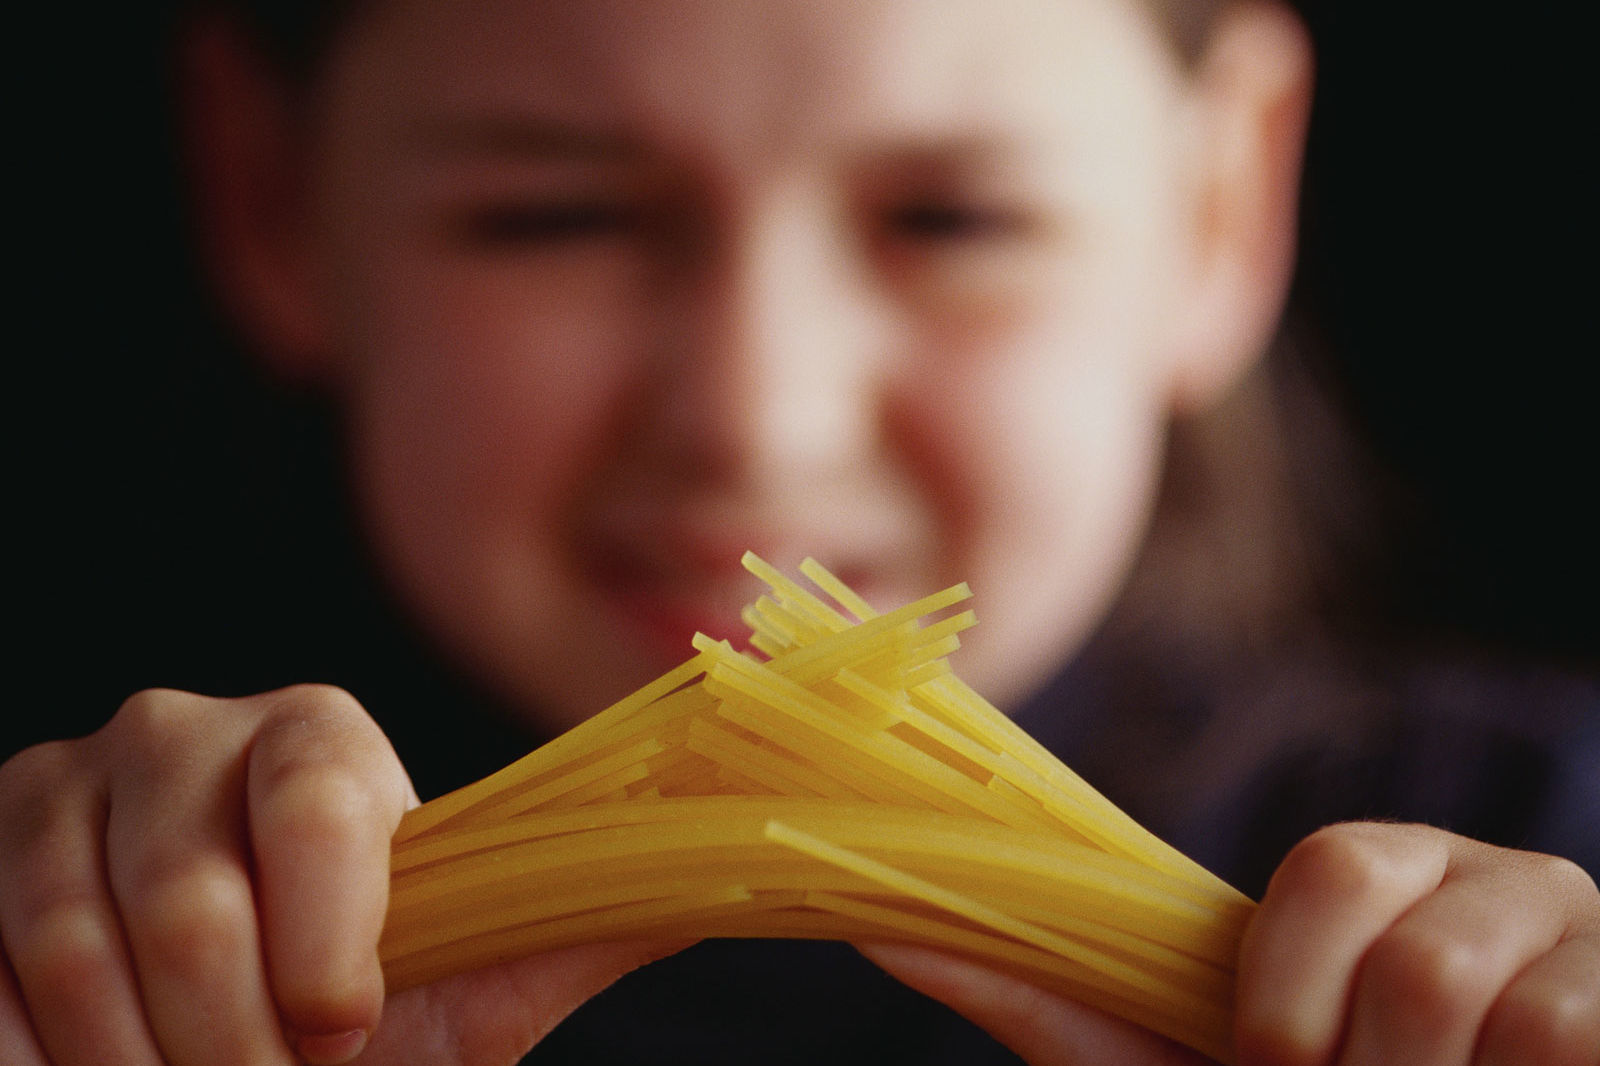 Science Has Found a Way to Snap Dry Spaghetti into Two Equal Pieces